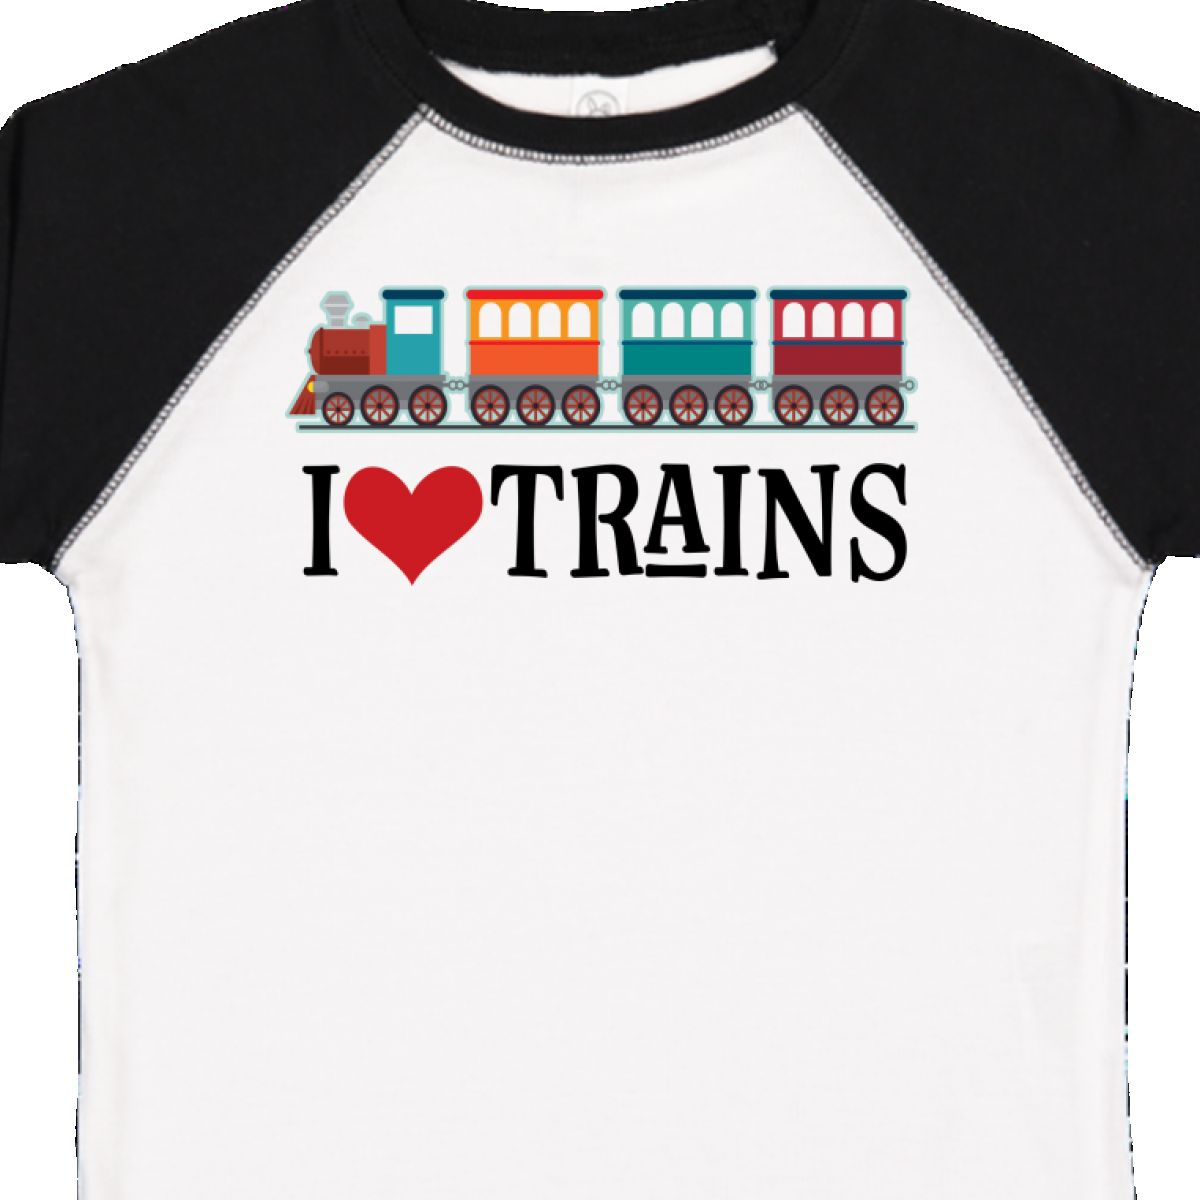 Inktastic-I-Love-Trains-Toddler-T-Shirt-Choo-Childs-Clothing-Apparel-Railfan-Set thumbnail 30